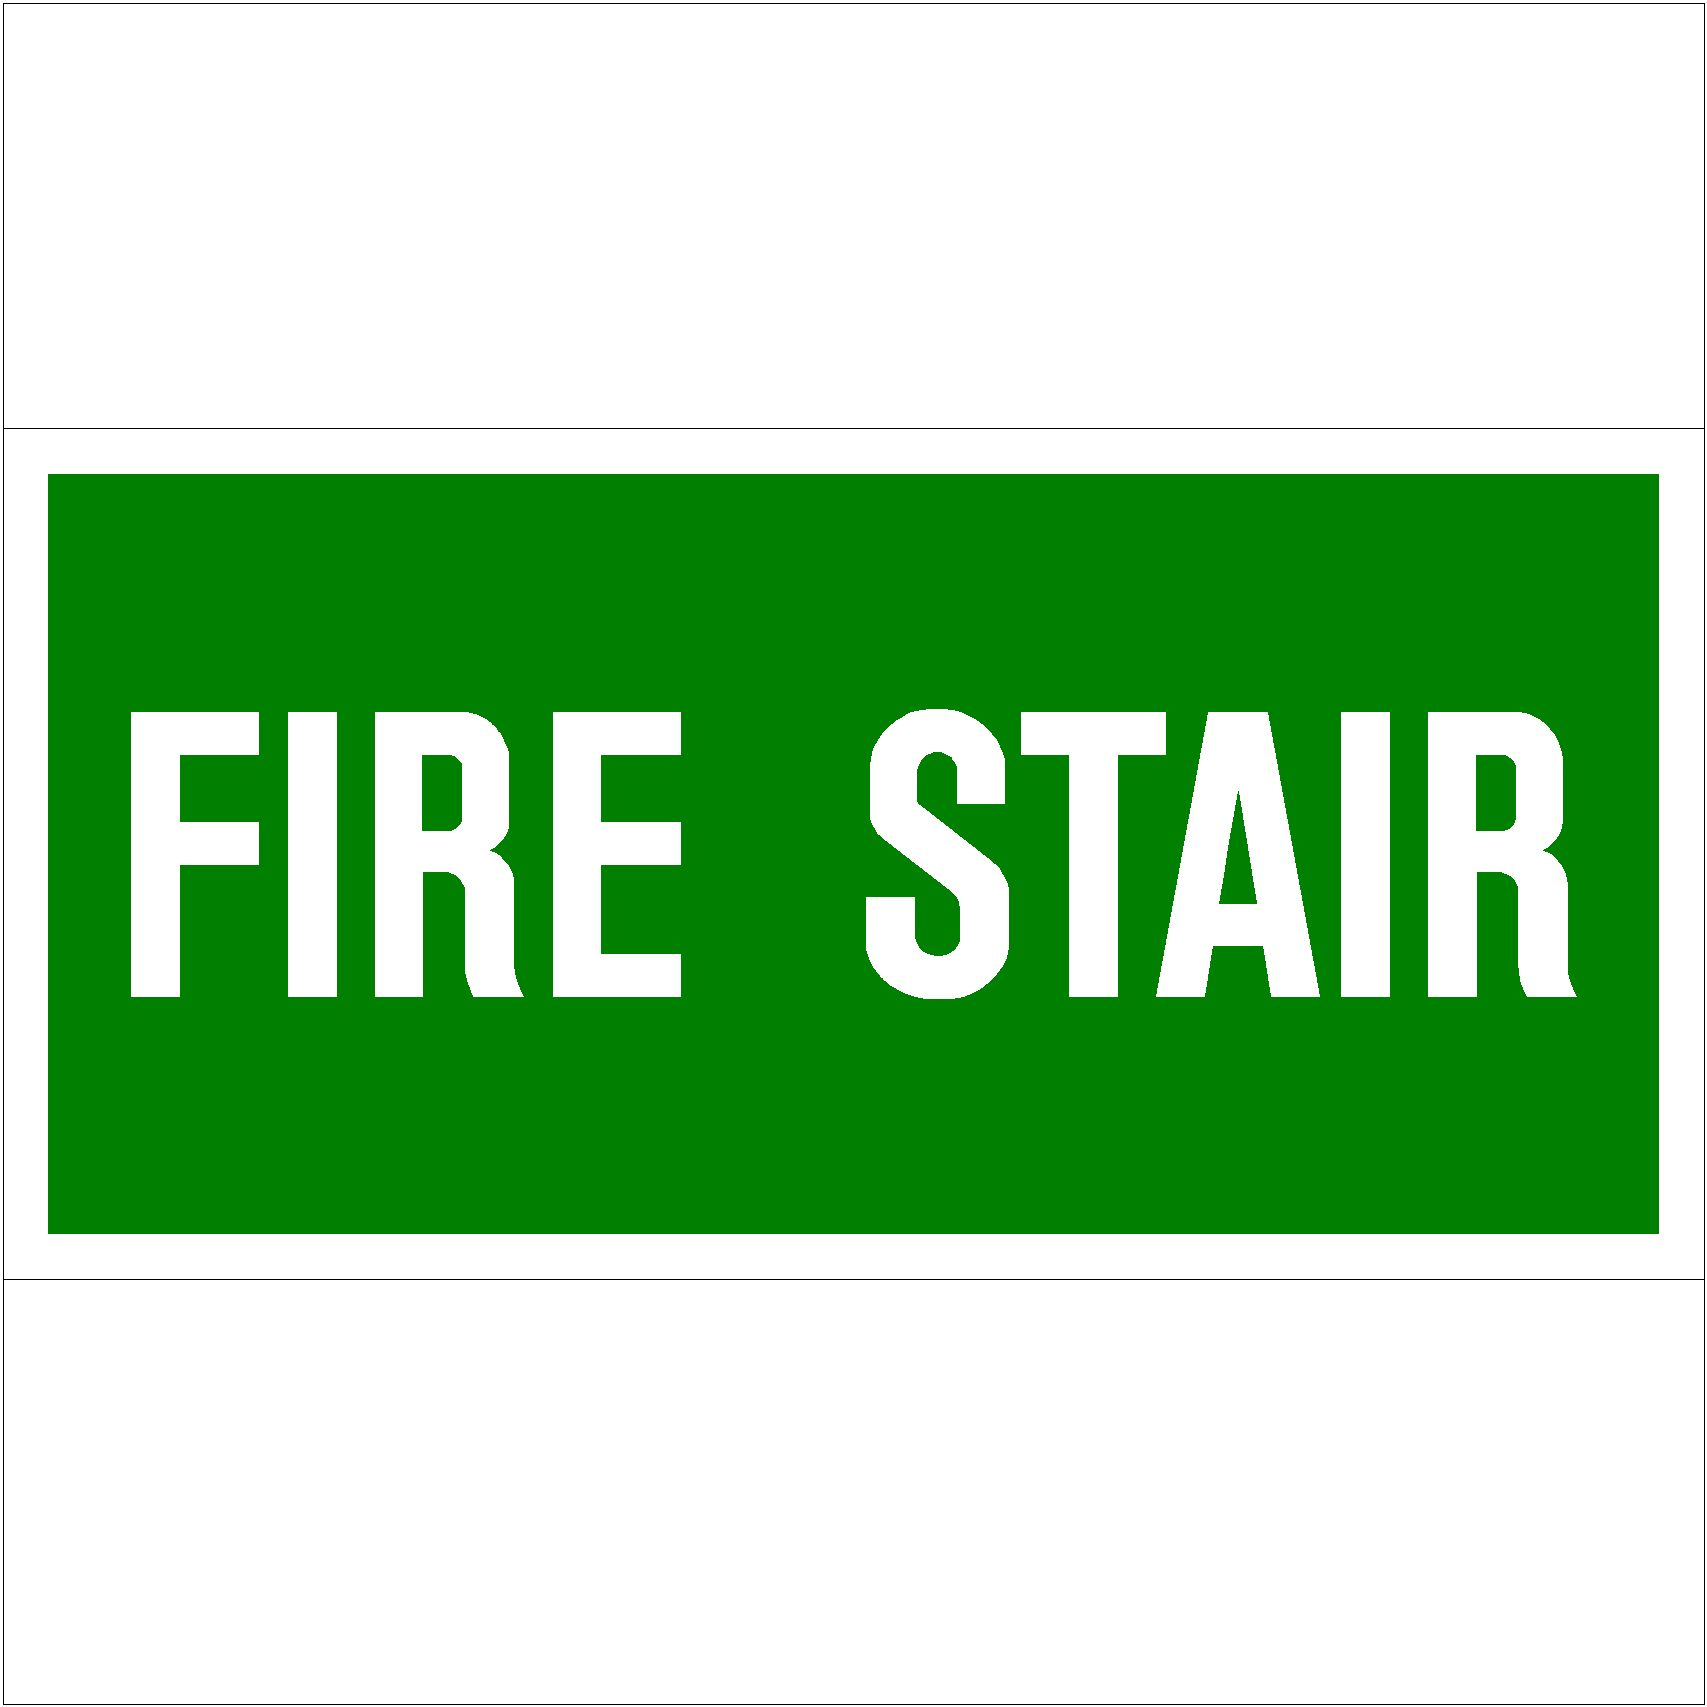 Fire Stair